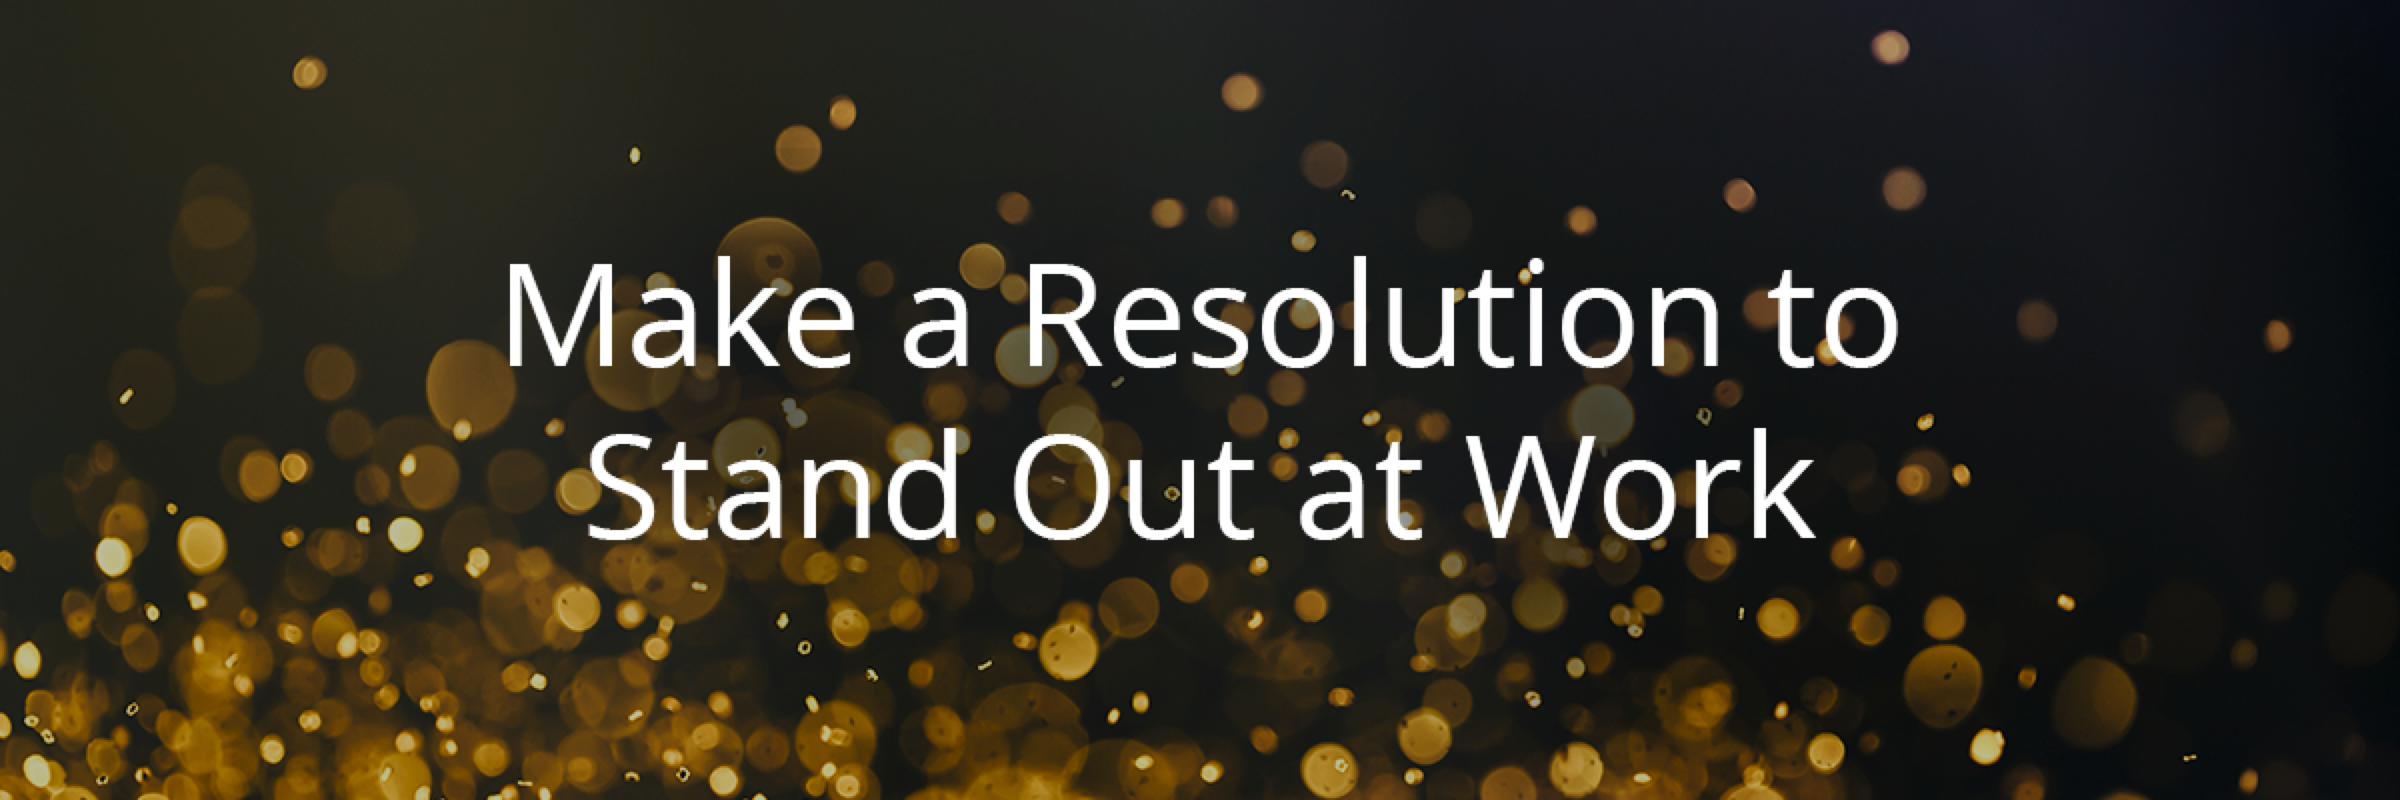 Make a Resolution to Stand Out at Work